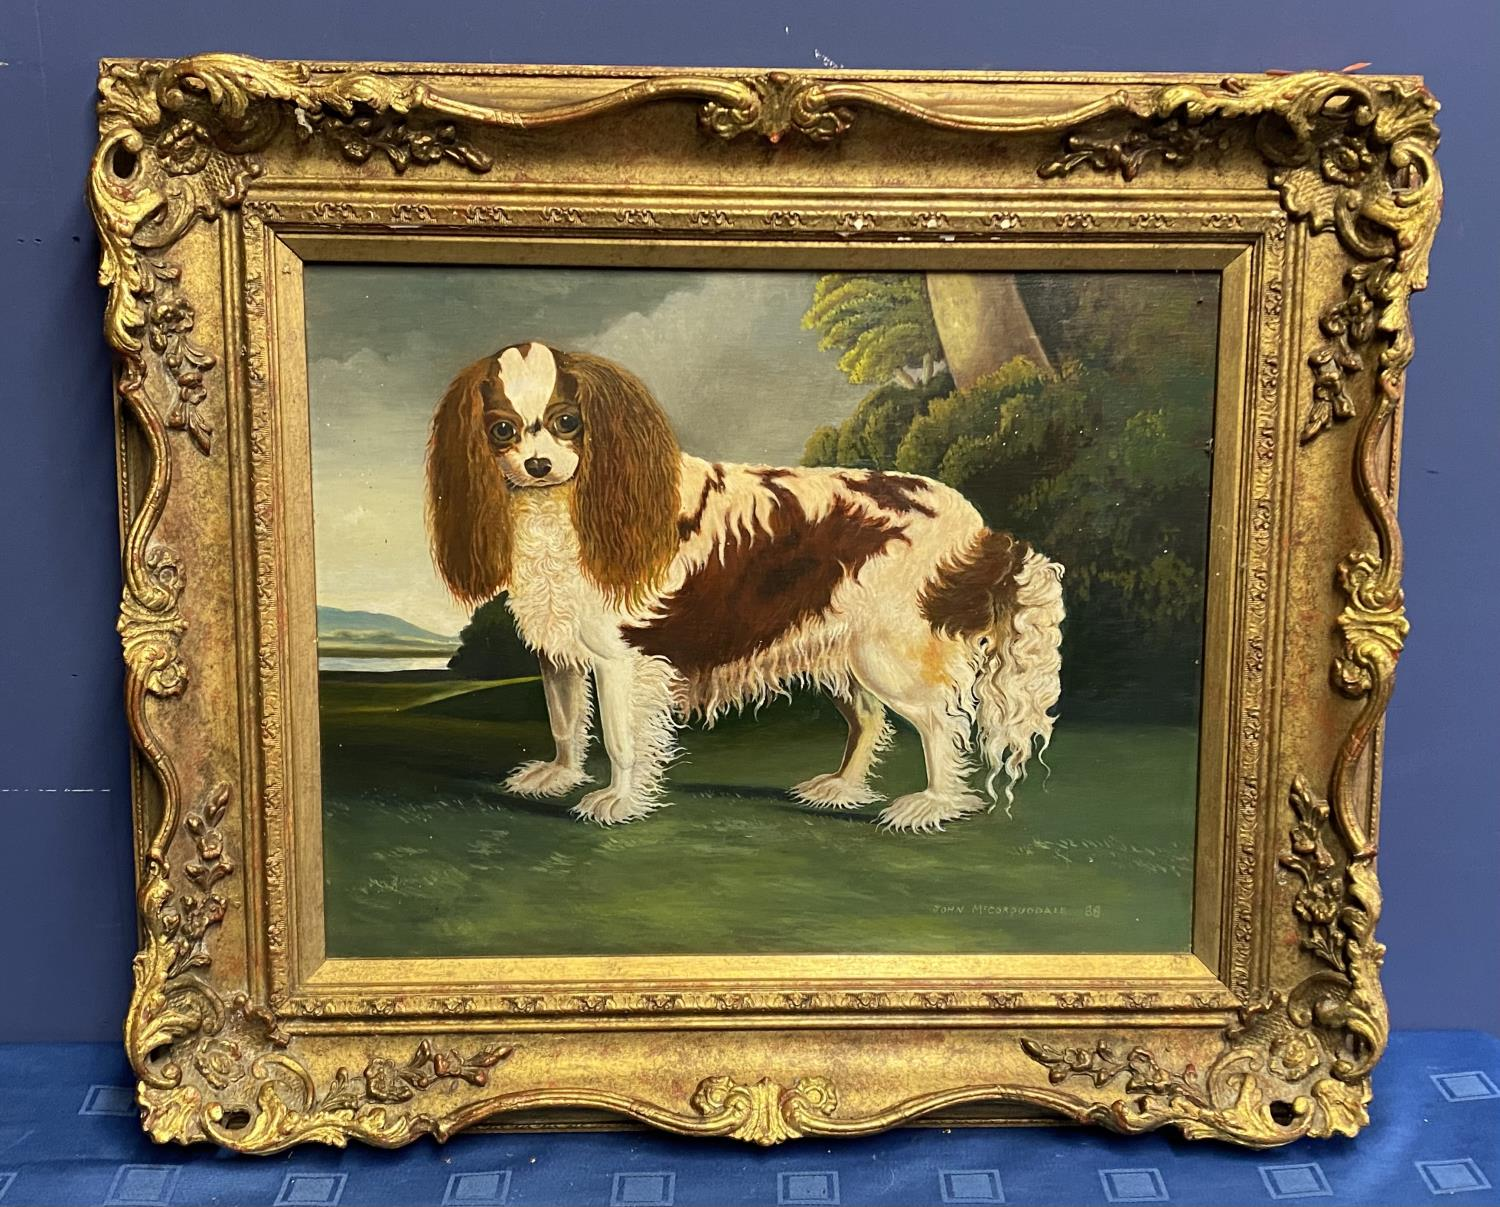 C20th oil on board, study of a King Charles Spaniel, signed and dated John McCorquodale 88, 40 x